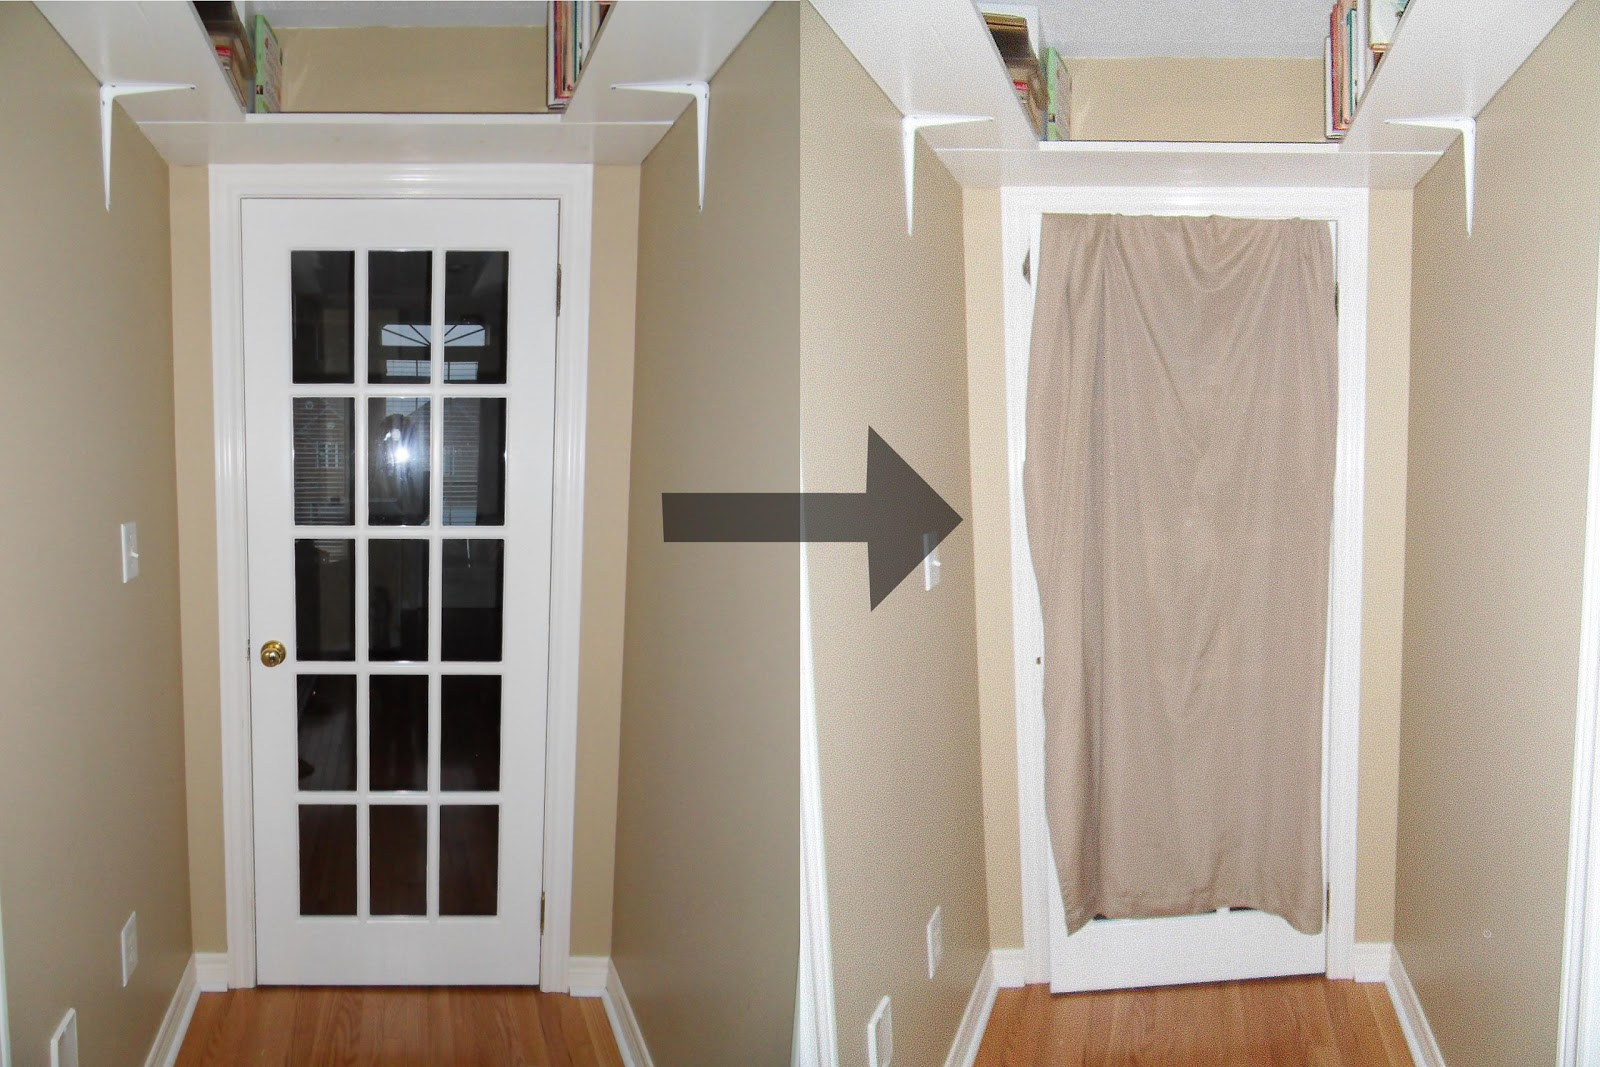 Le Meilleur Not A House But A Home French Door Cover Up Ce Mois Ci